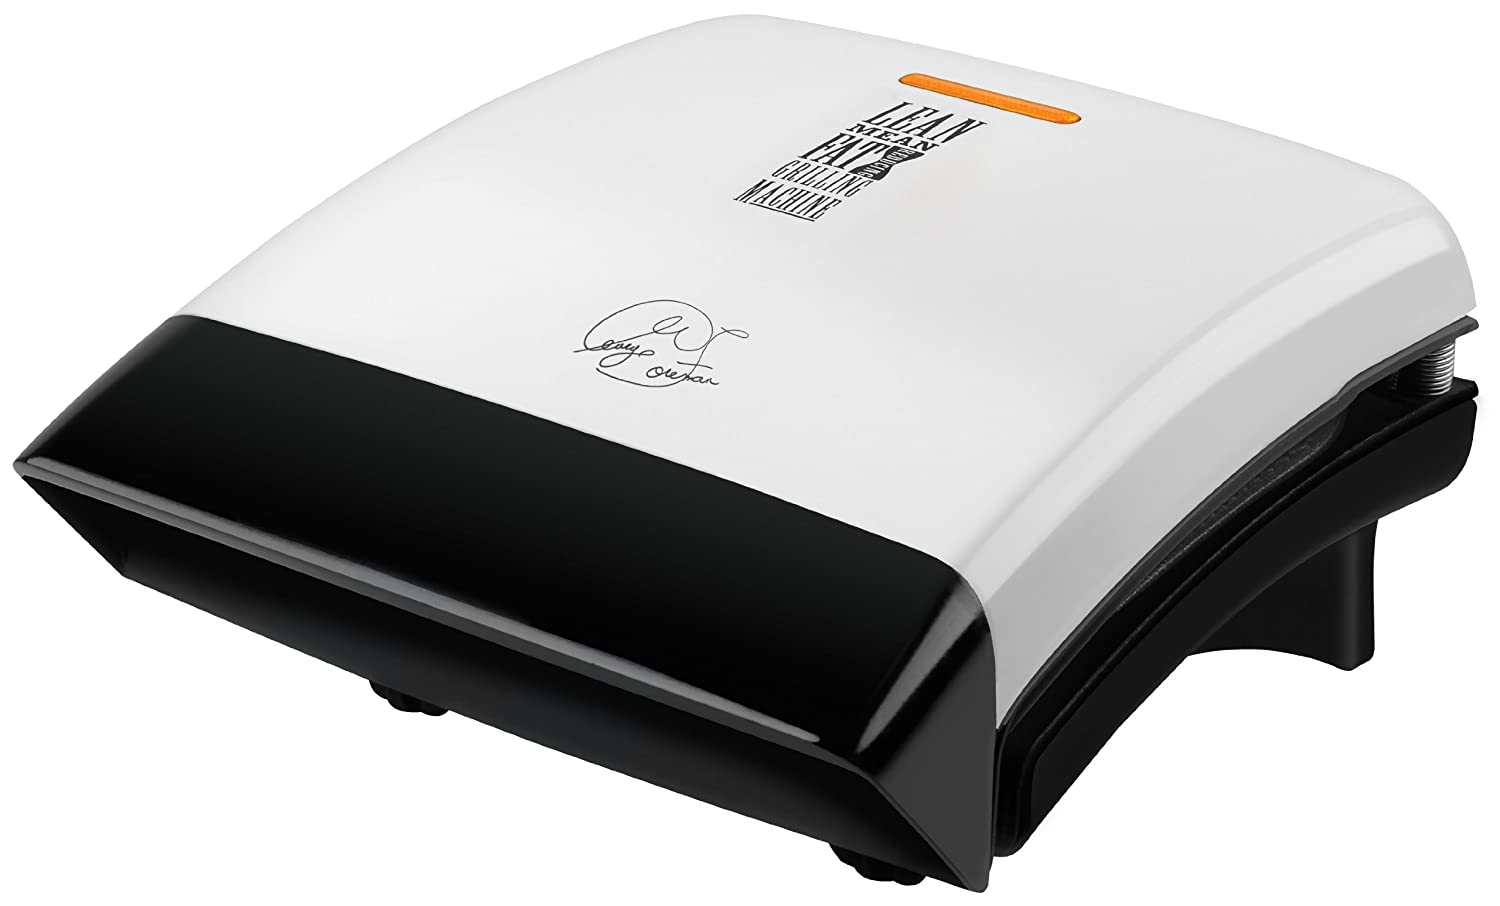 George Foreman GR0038W Champ 36-Square-Inch Nonstick Grill